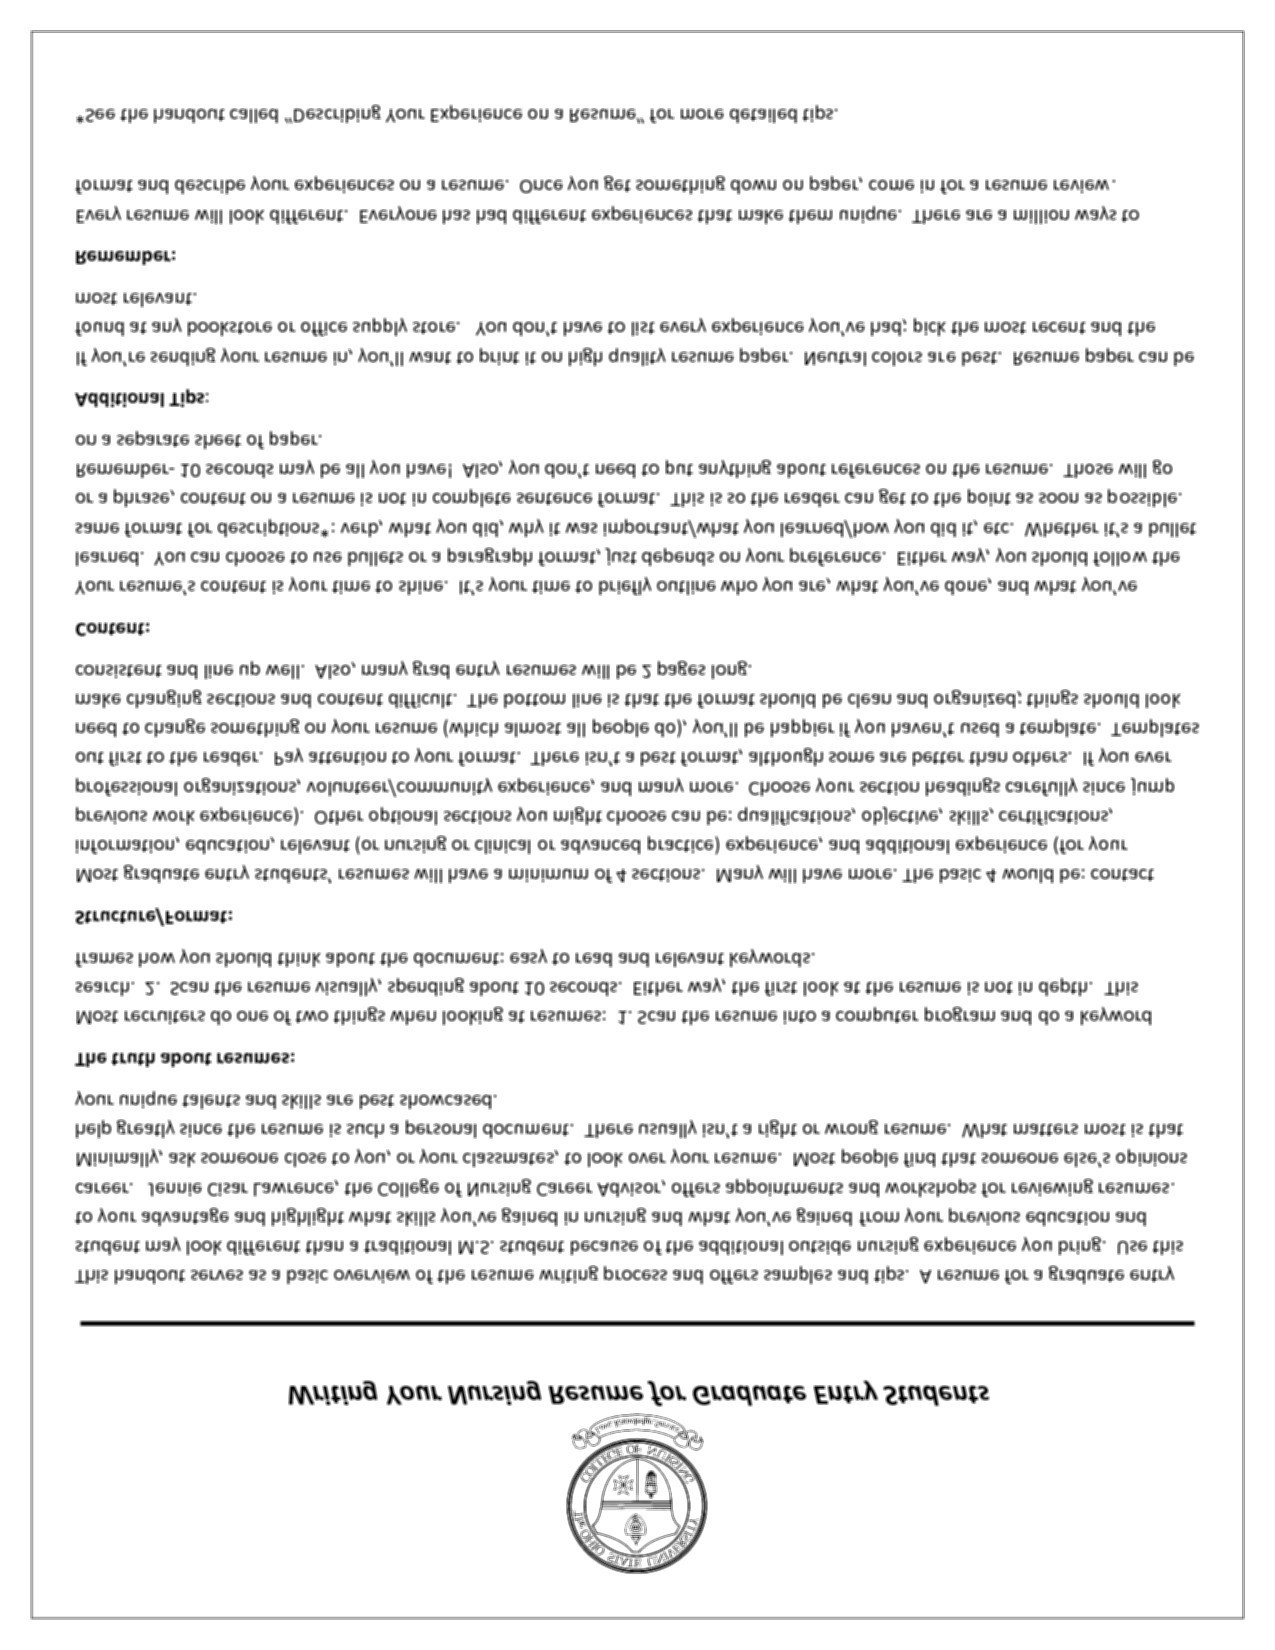 Summer Counselor Resume - 25 Luxury Counselor Resume